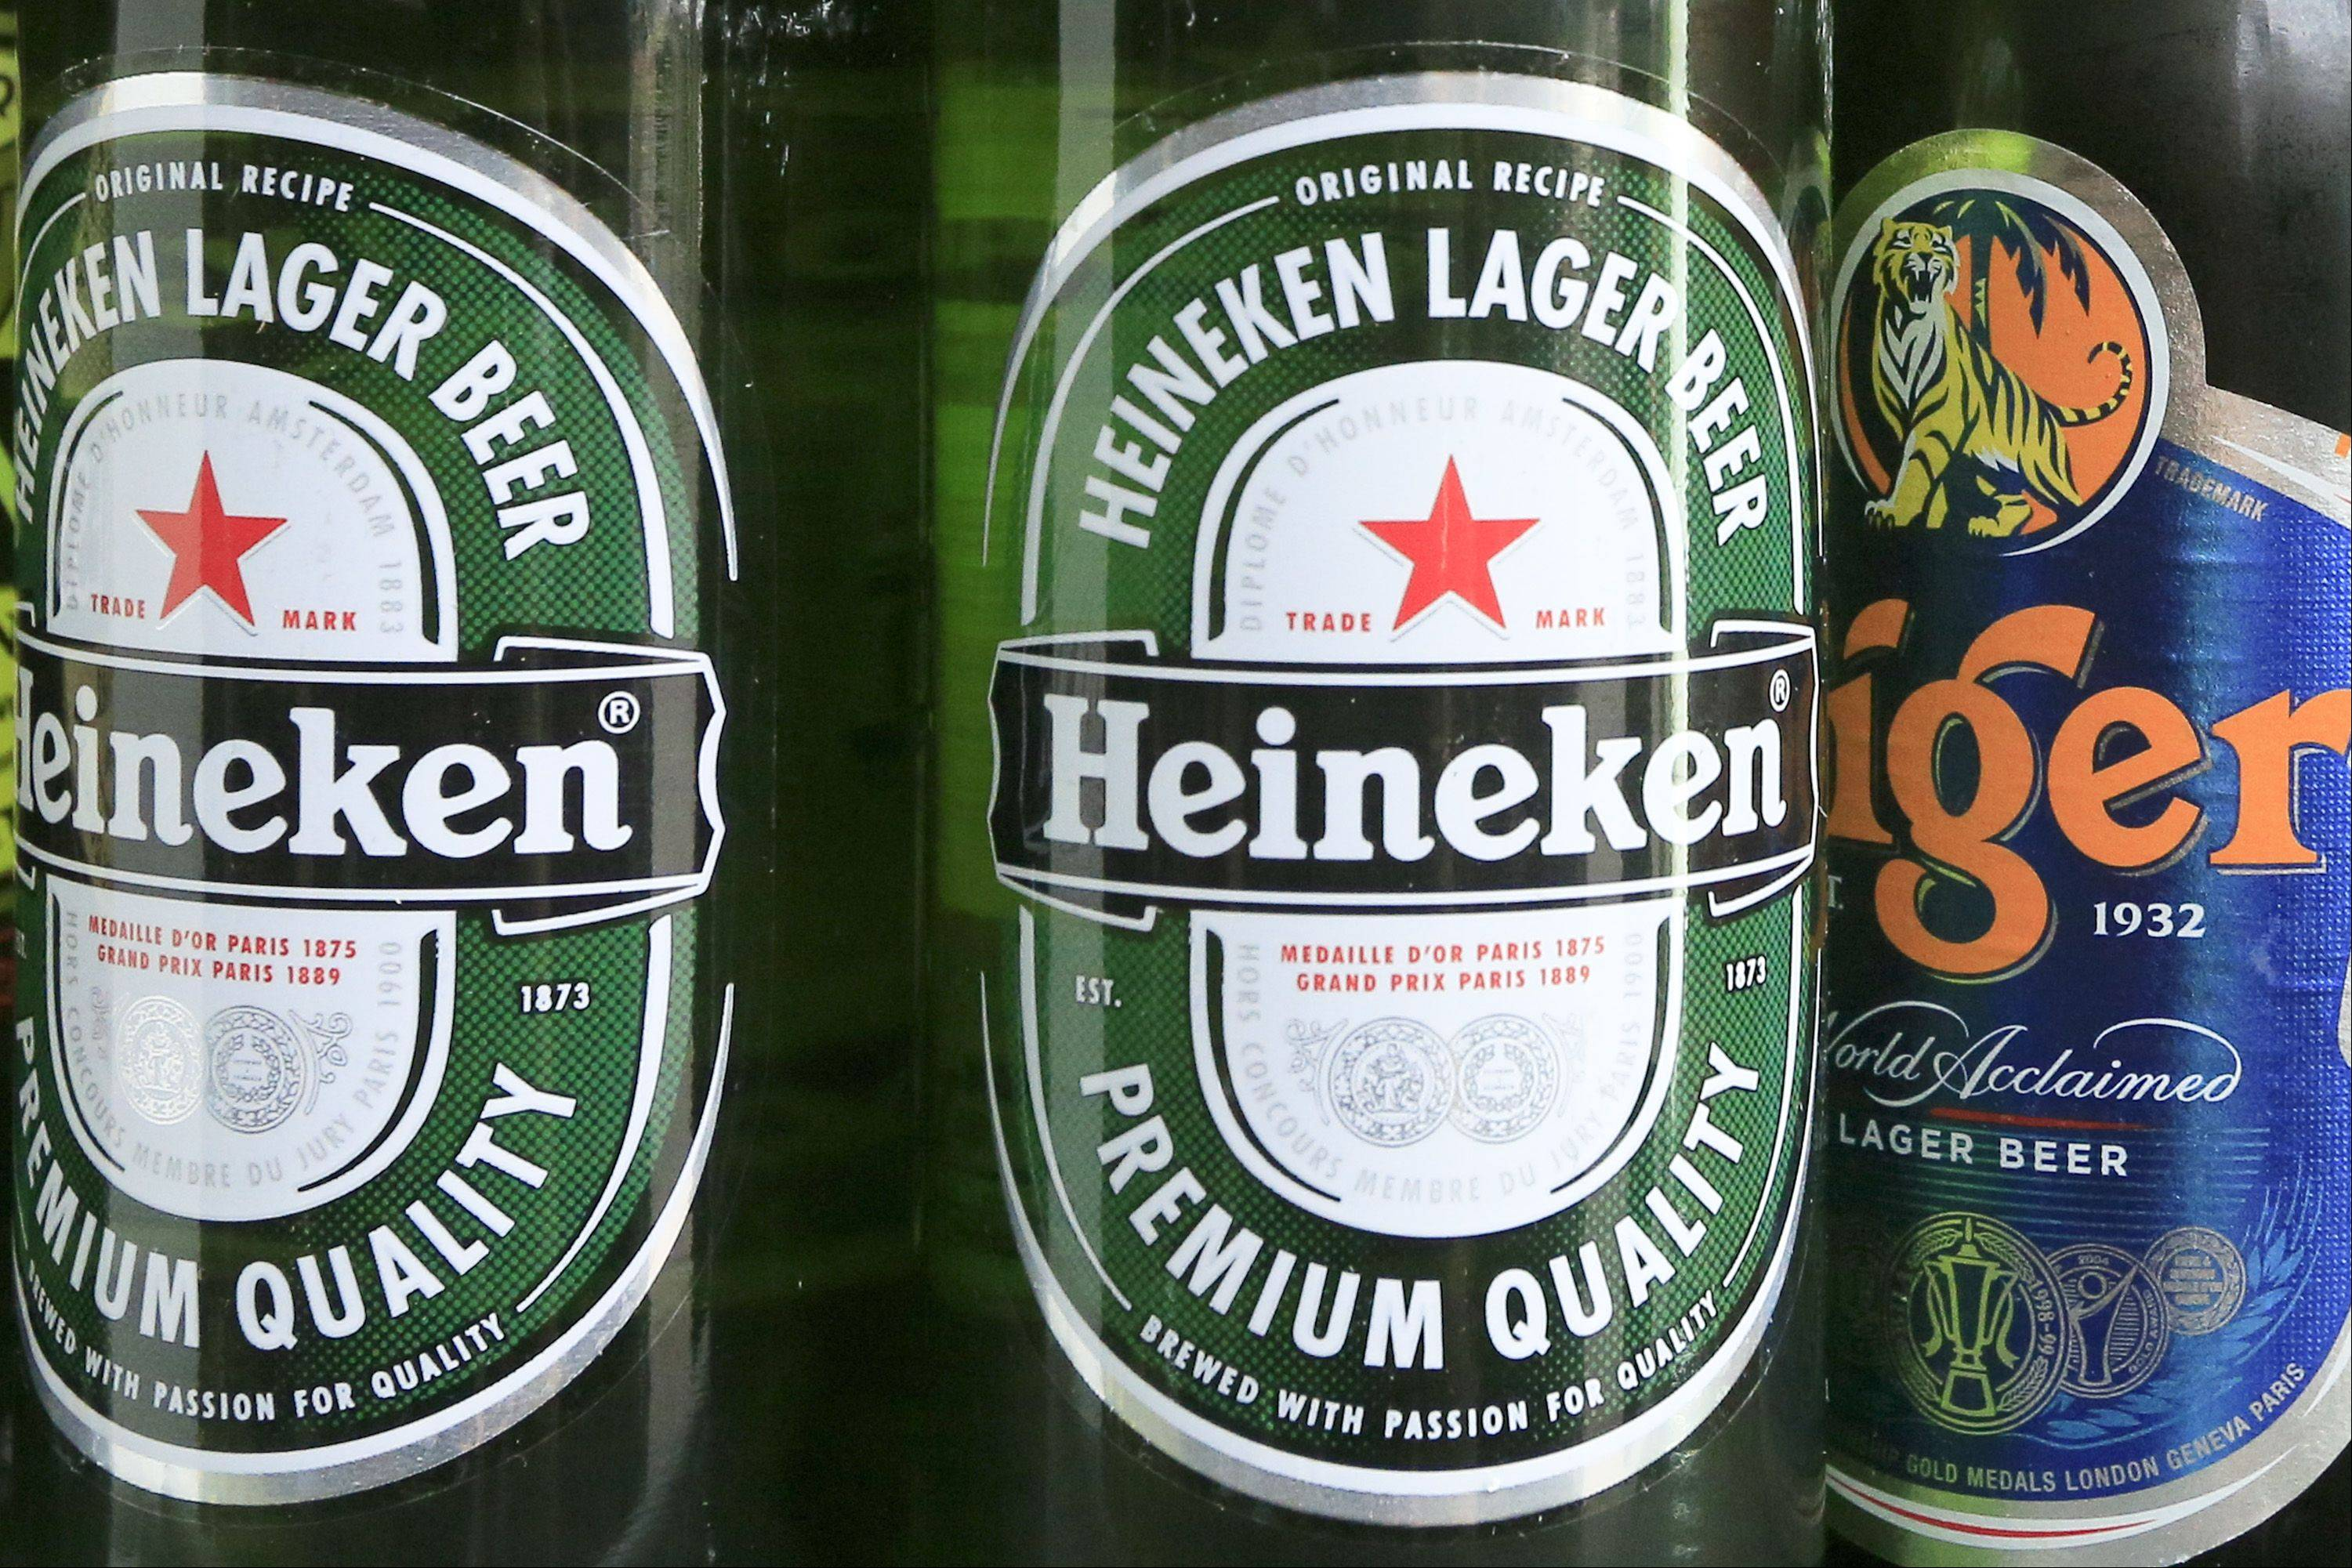 Dutch brewer Heineken NV says it will keep fighting to buy the shares it doesn't already own of Tiger beer owner Asia Pacific Breweries of Singapore, despite efforts to upset the deal by a Thai group.